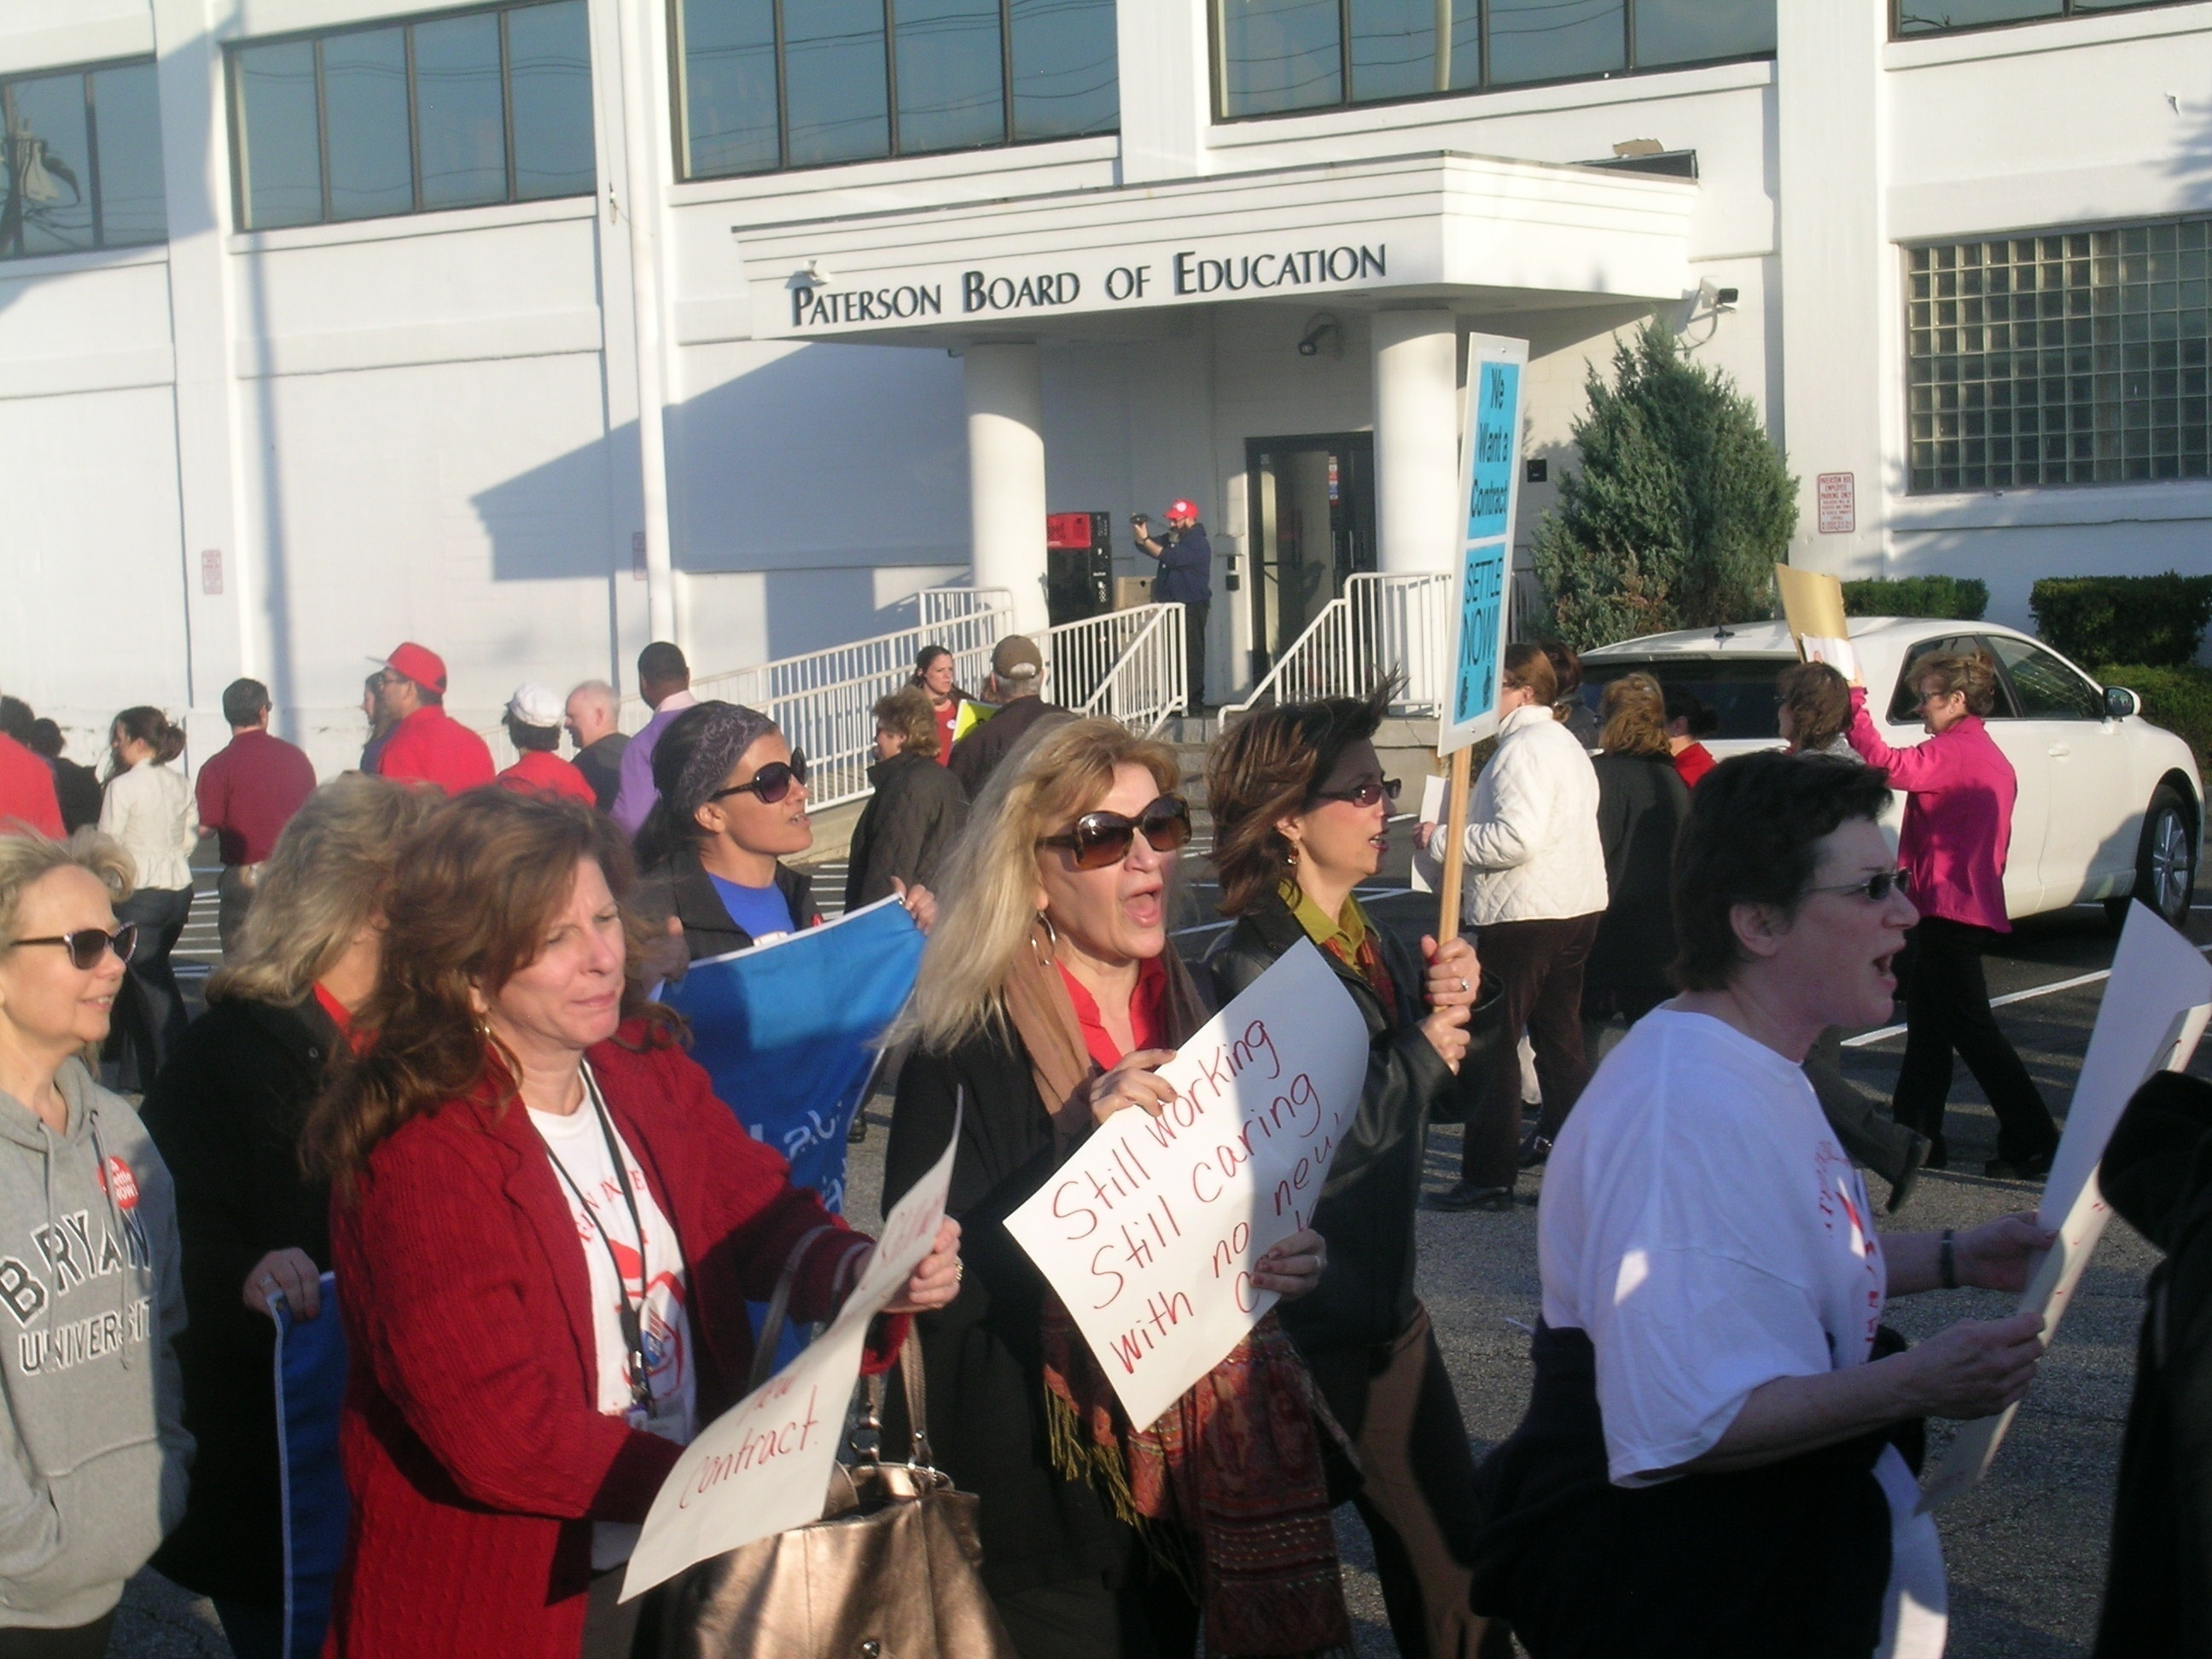 Paterson Teachers Oppose District's Efforts to Implement Merit Pay